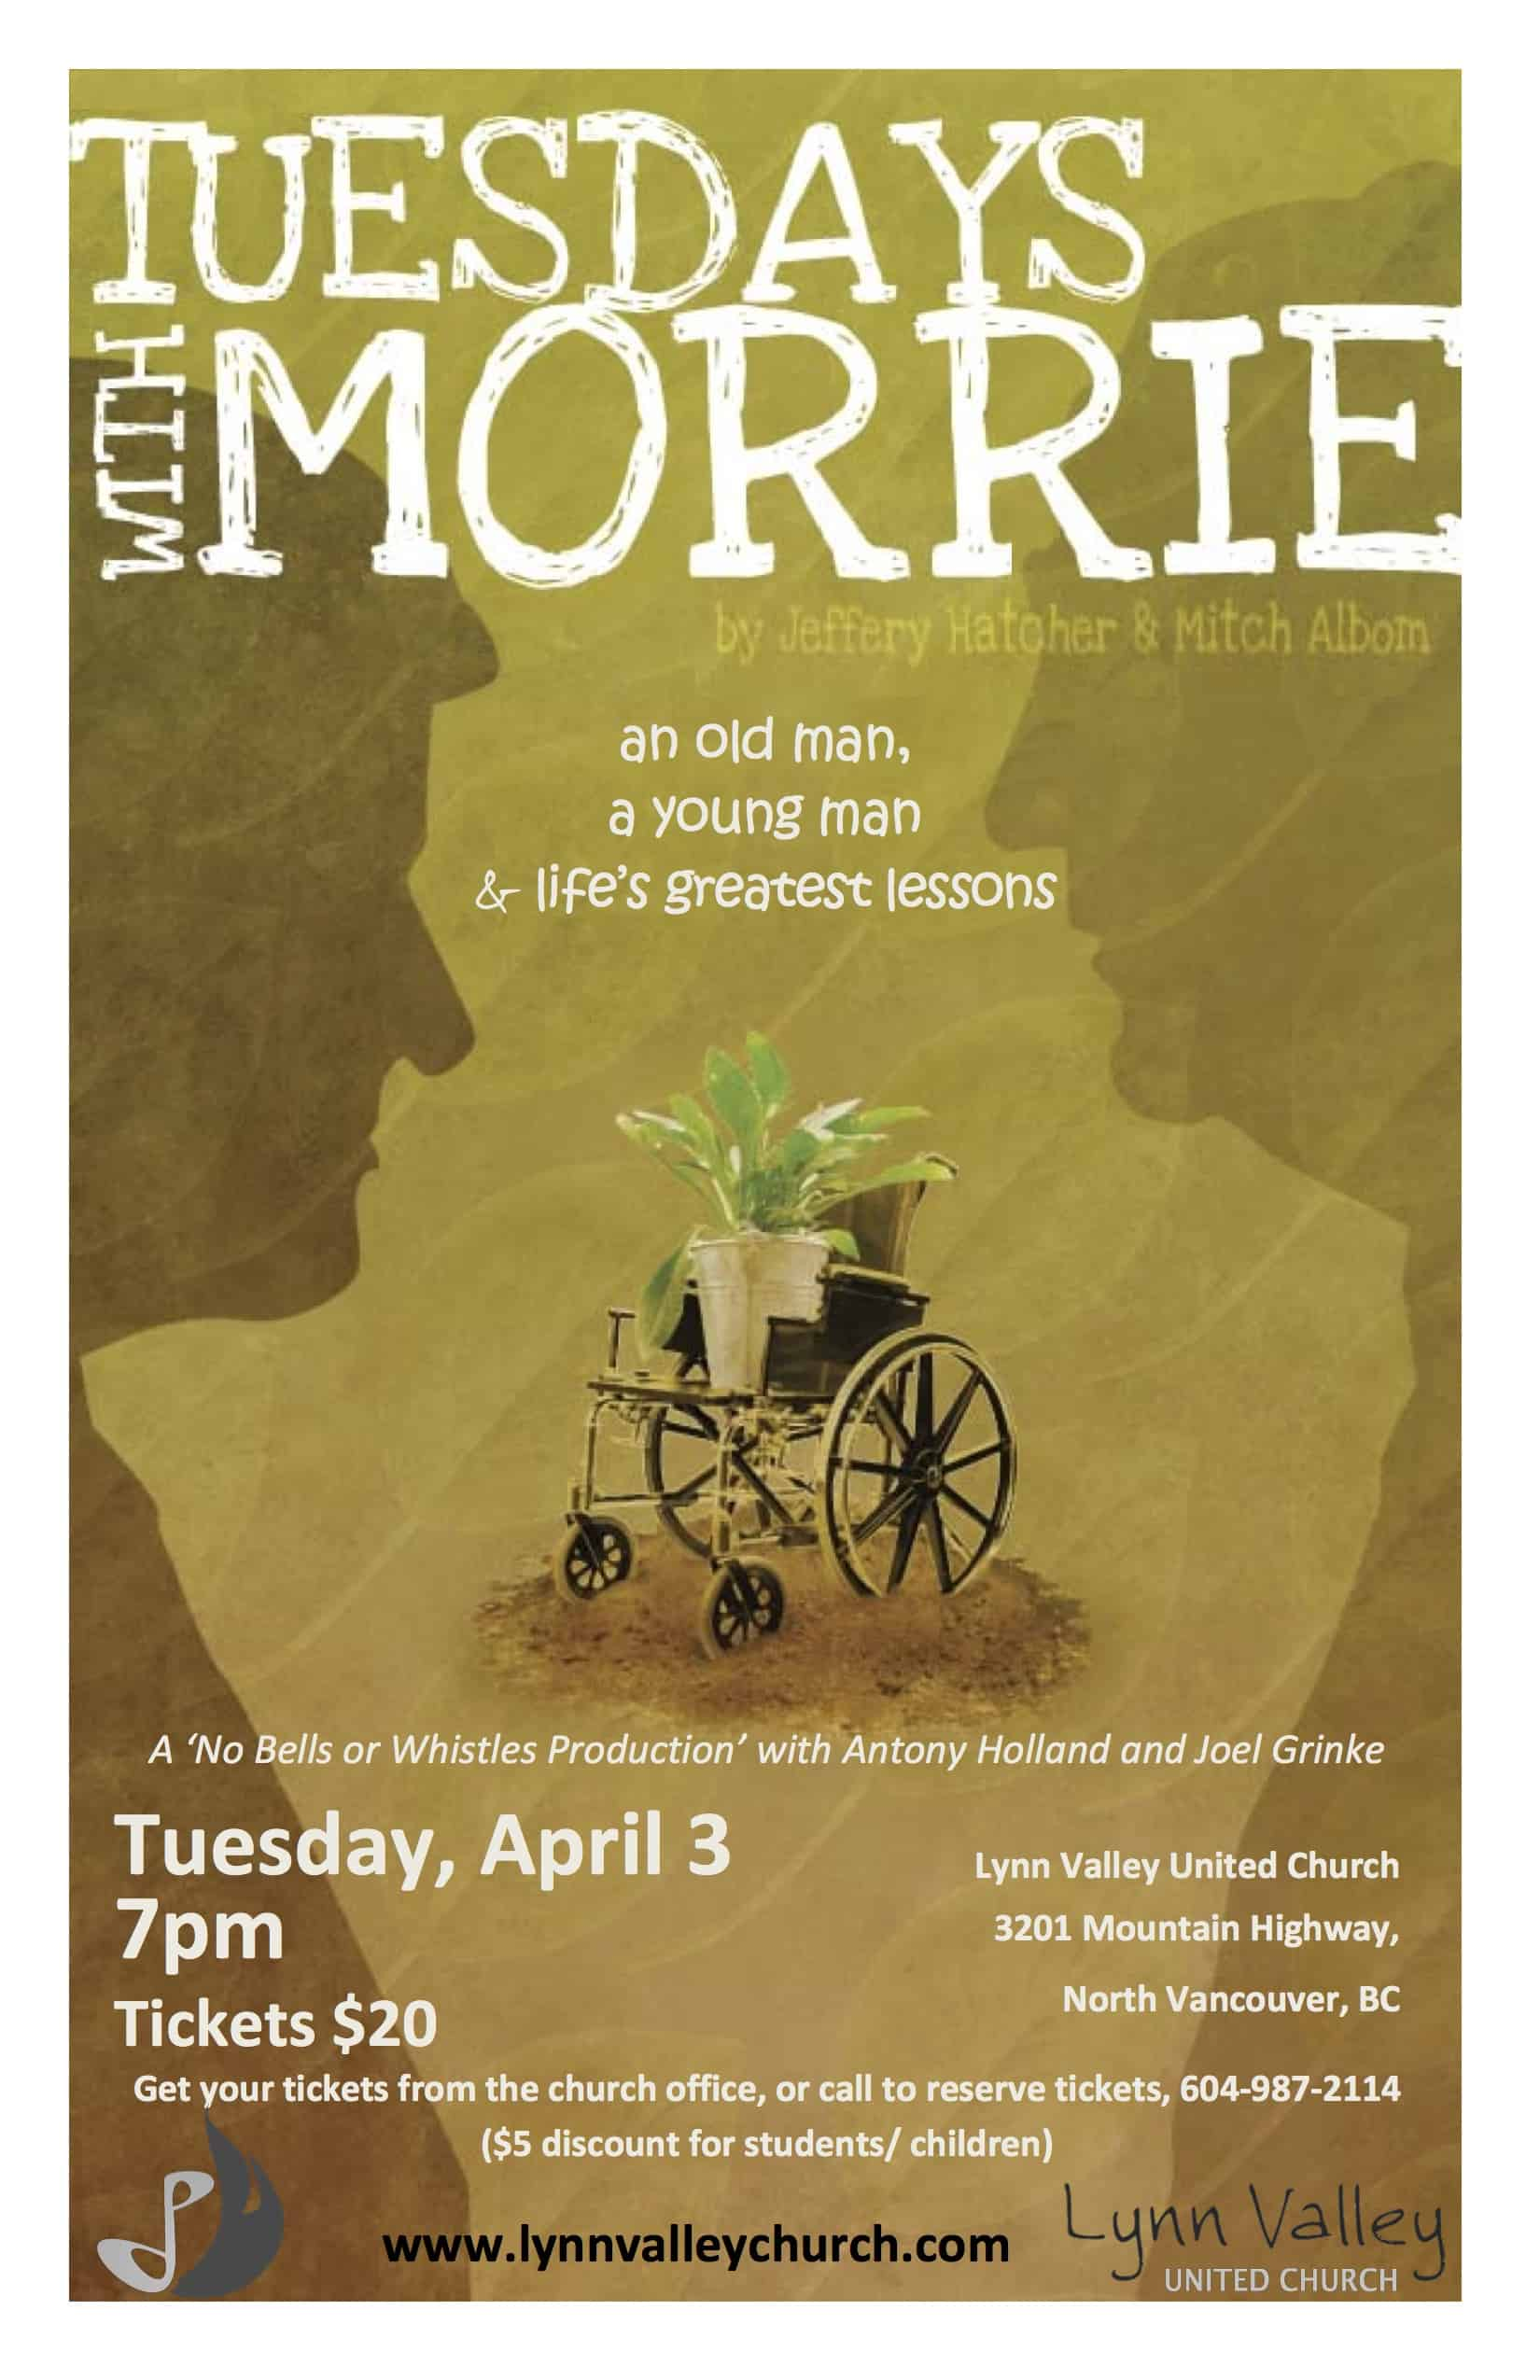 life and death according to morrie Tuesdays with morrie invites us to reflect on the dying process  a philosophical  man who lives life according to his principles, he is a favourite.